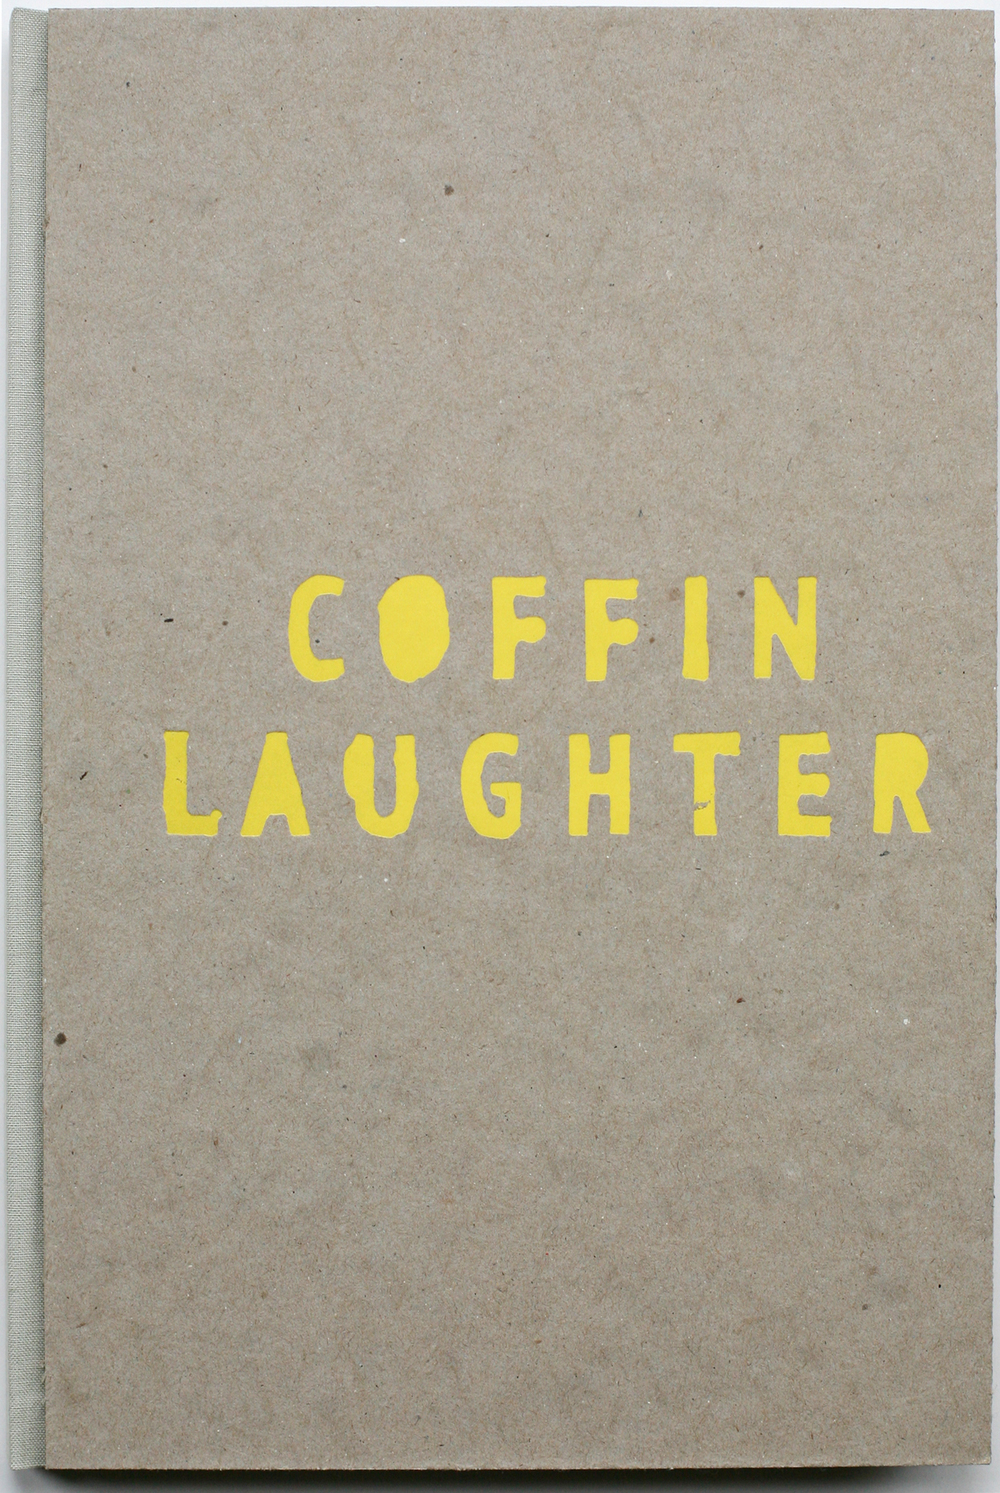 Coffin Laughter, edition of ten, 2014-2015 (in 4 private collections, including the Achenbach Foundation)